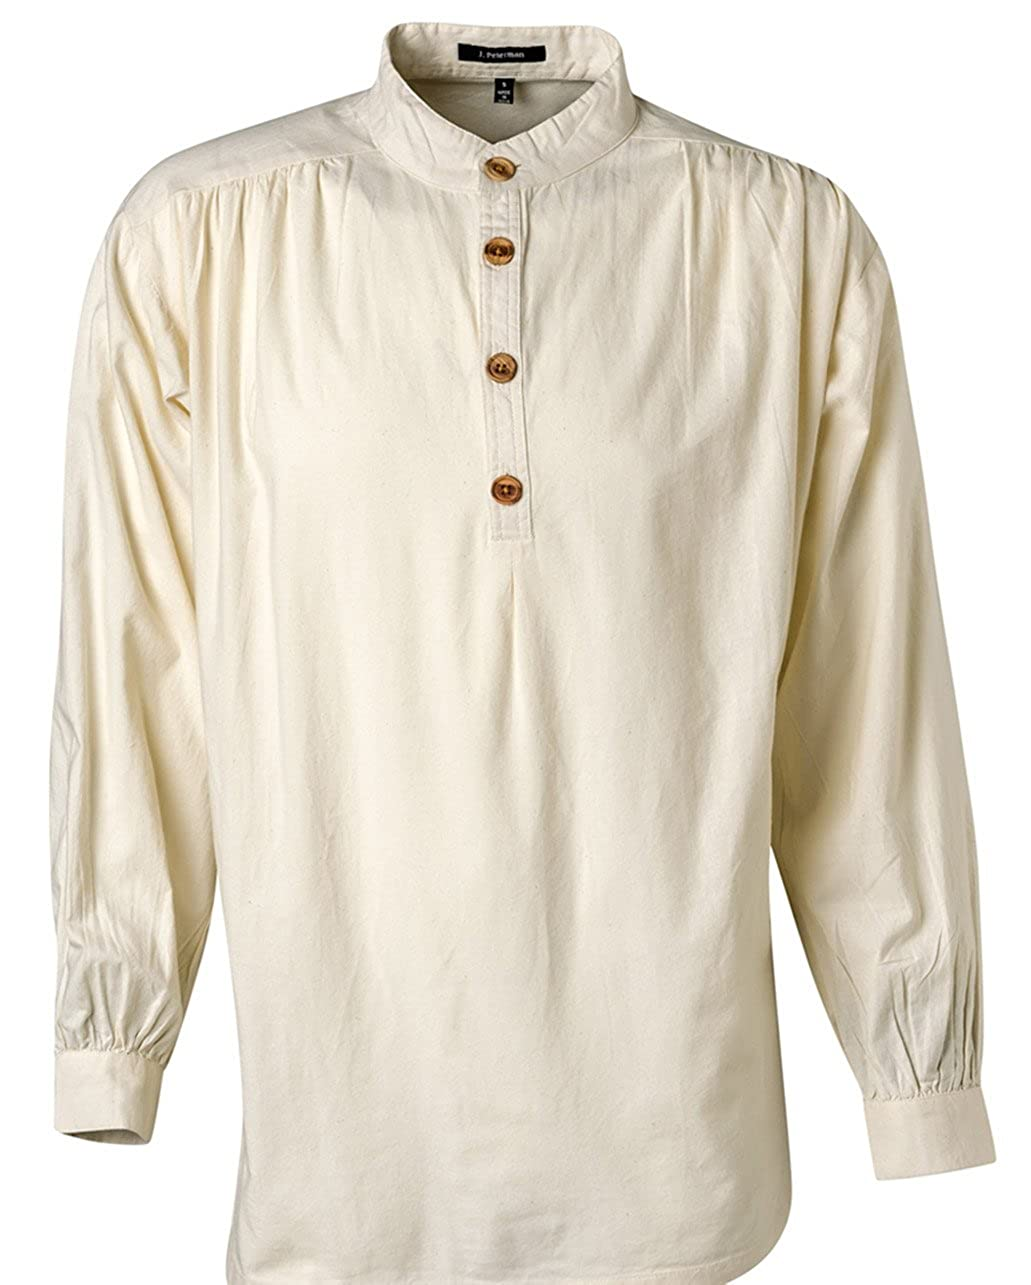 1920s Style Mens Shirts | Peaky Blinders Shirts and Collars The J. Peterman Shirt $44.85 AT vintagedancer.com